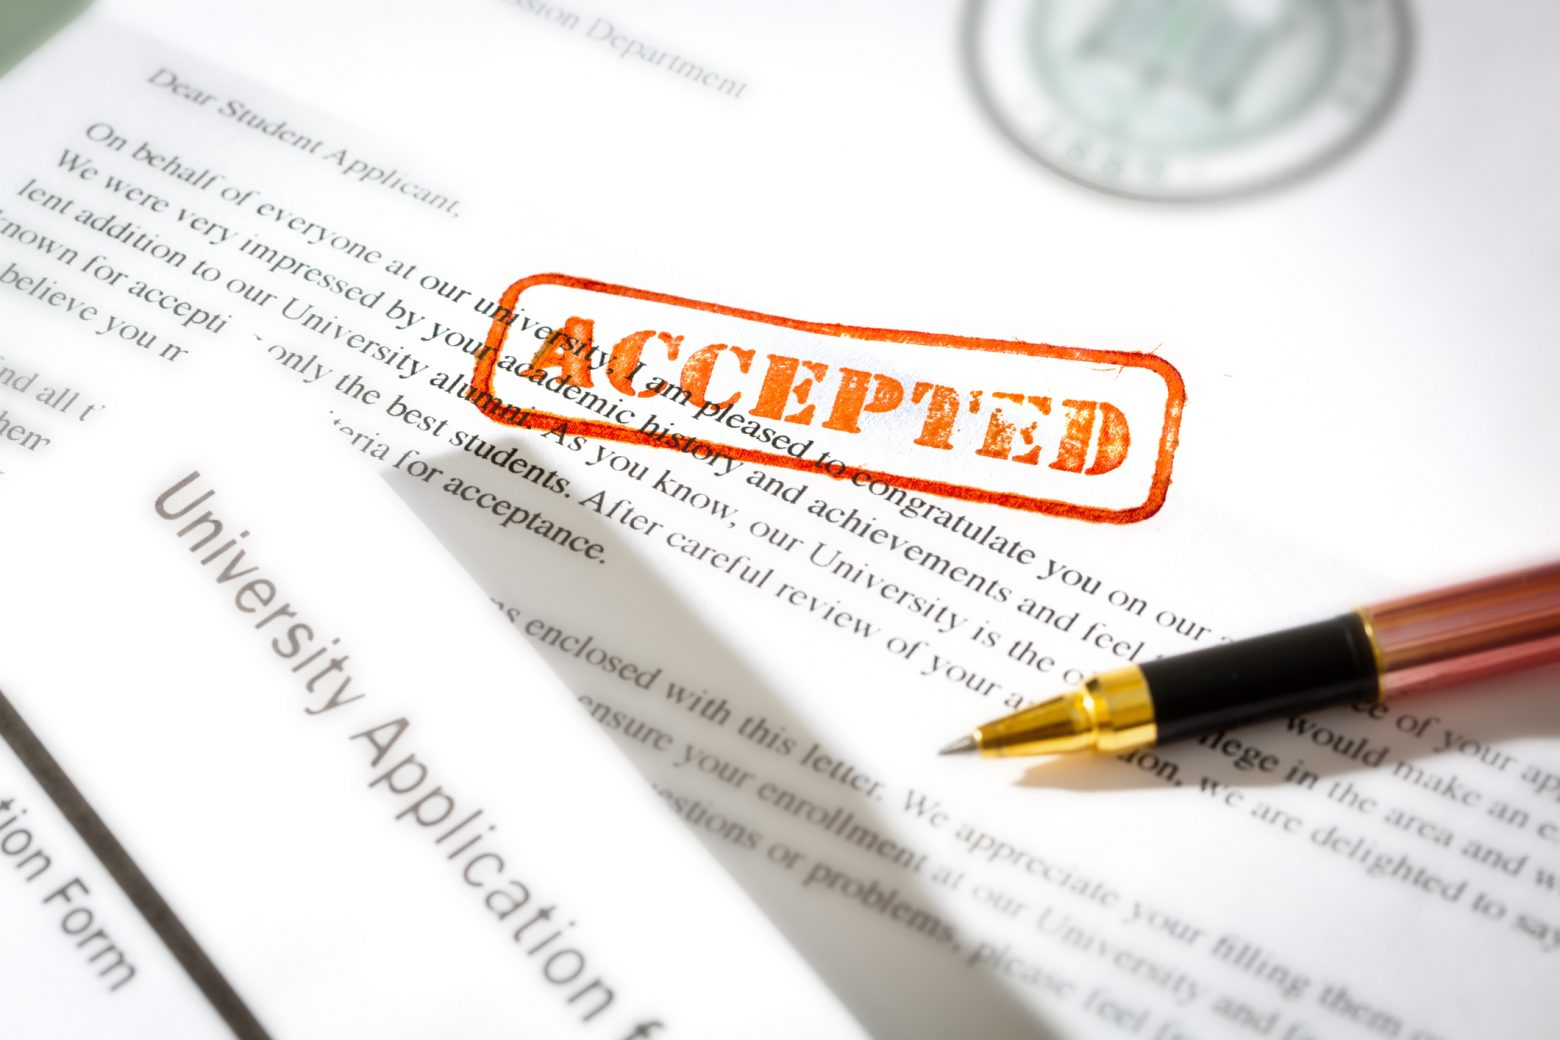 Find The Best Ways You Can Learn To Apply For College Admission To Ensure Your Road To Success